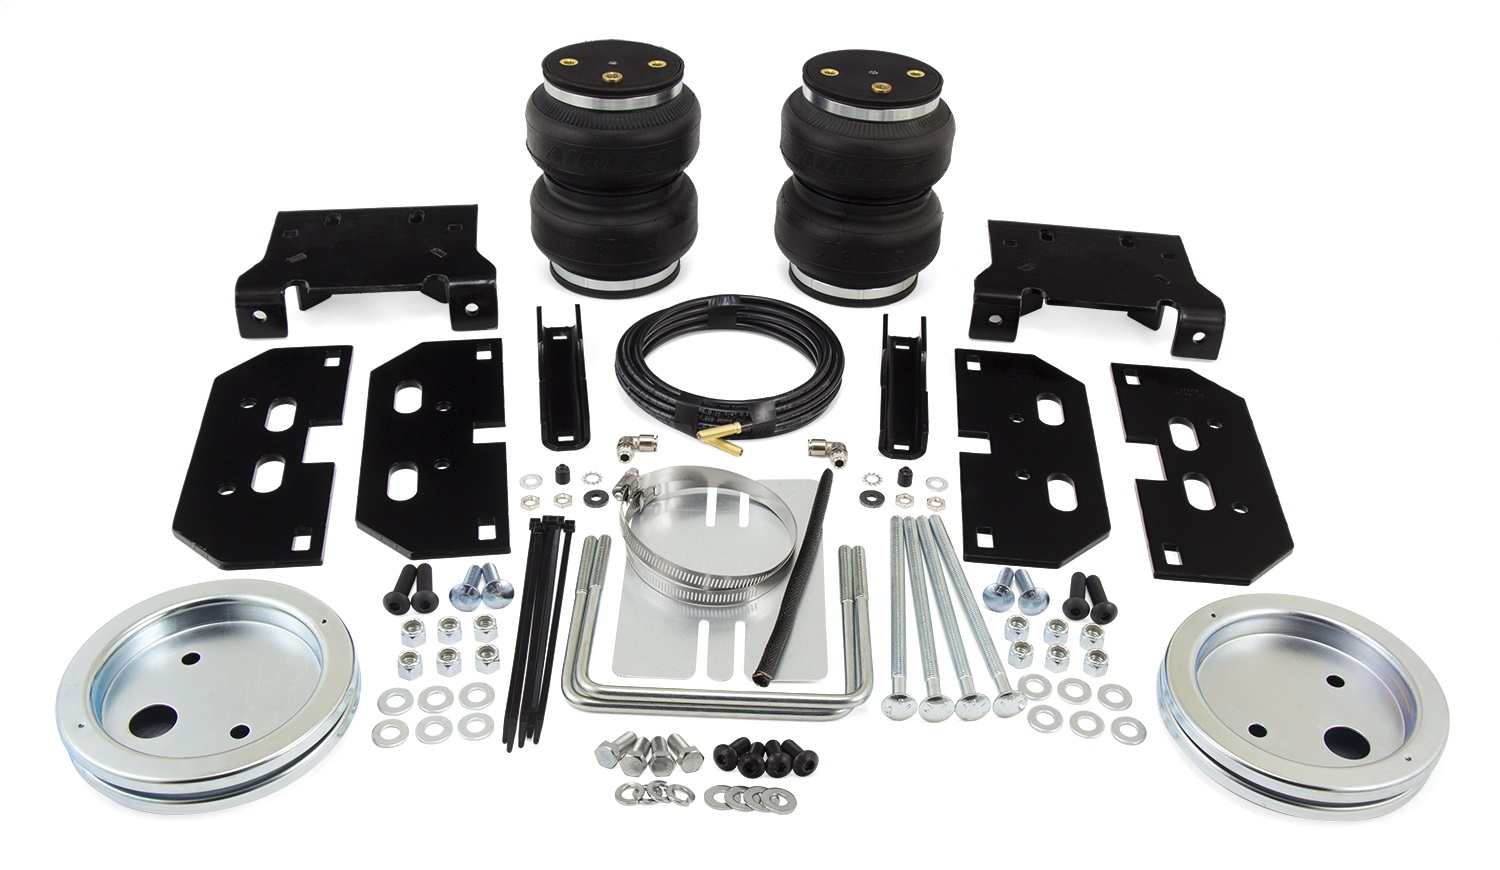 Air Lift 57295 LoadLifter 5000 Leveling Kit Fits 2500 3500 Ram 2500 Ram 3500